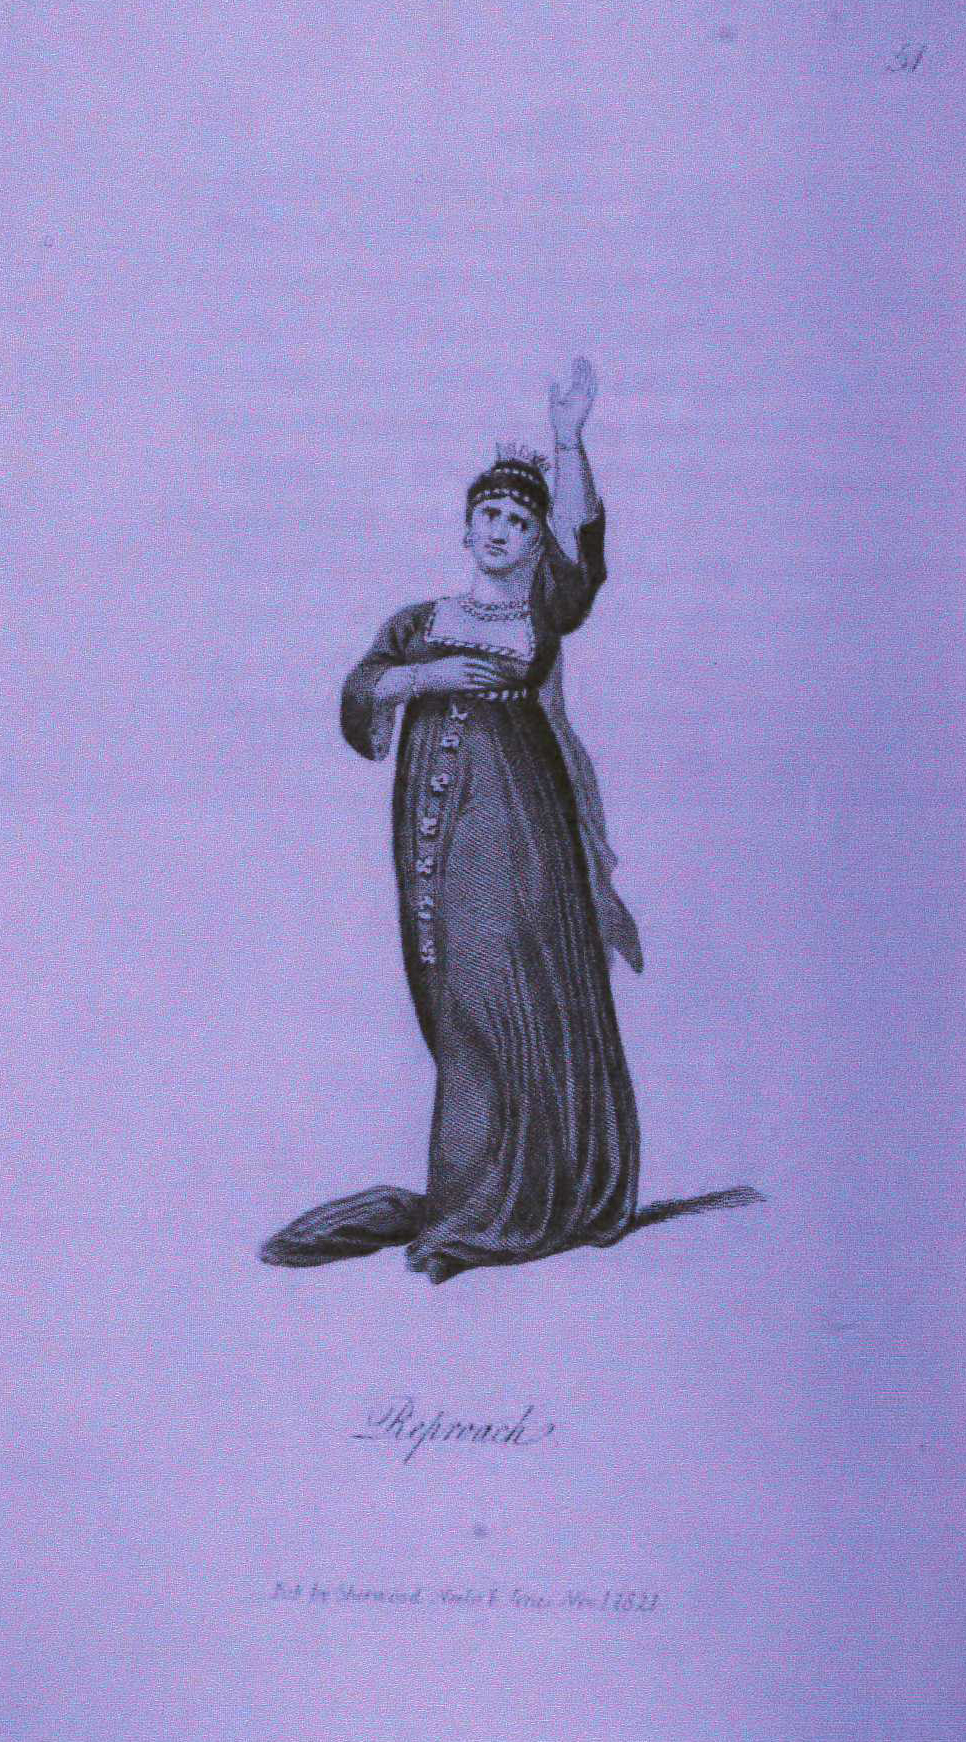 <b>Reproach Gesture</b>     	</br>Developed in the 19th century, systems of rhetorical gestures influenced the acting styles of melodramatic performers. This interpretation of reproach comes from a system of rhetorical gestures and actions that was adapted to the English stage by Henry Siddons.</br><br/><b>Source: </b><i>Reproach in Henry Siddons, Illustrations of Gesture and Action, 2nd ed. (London: Sheerwood, Neely, and Jones, 1822), Plate LI, http://books.google.com/books/about/Practical_Illustrations_of_Rhetorical_Ge.html?id=iSsLAAAAIAAJ</i>